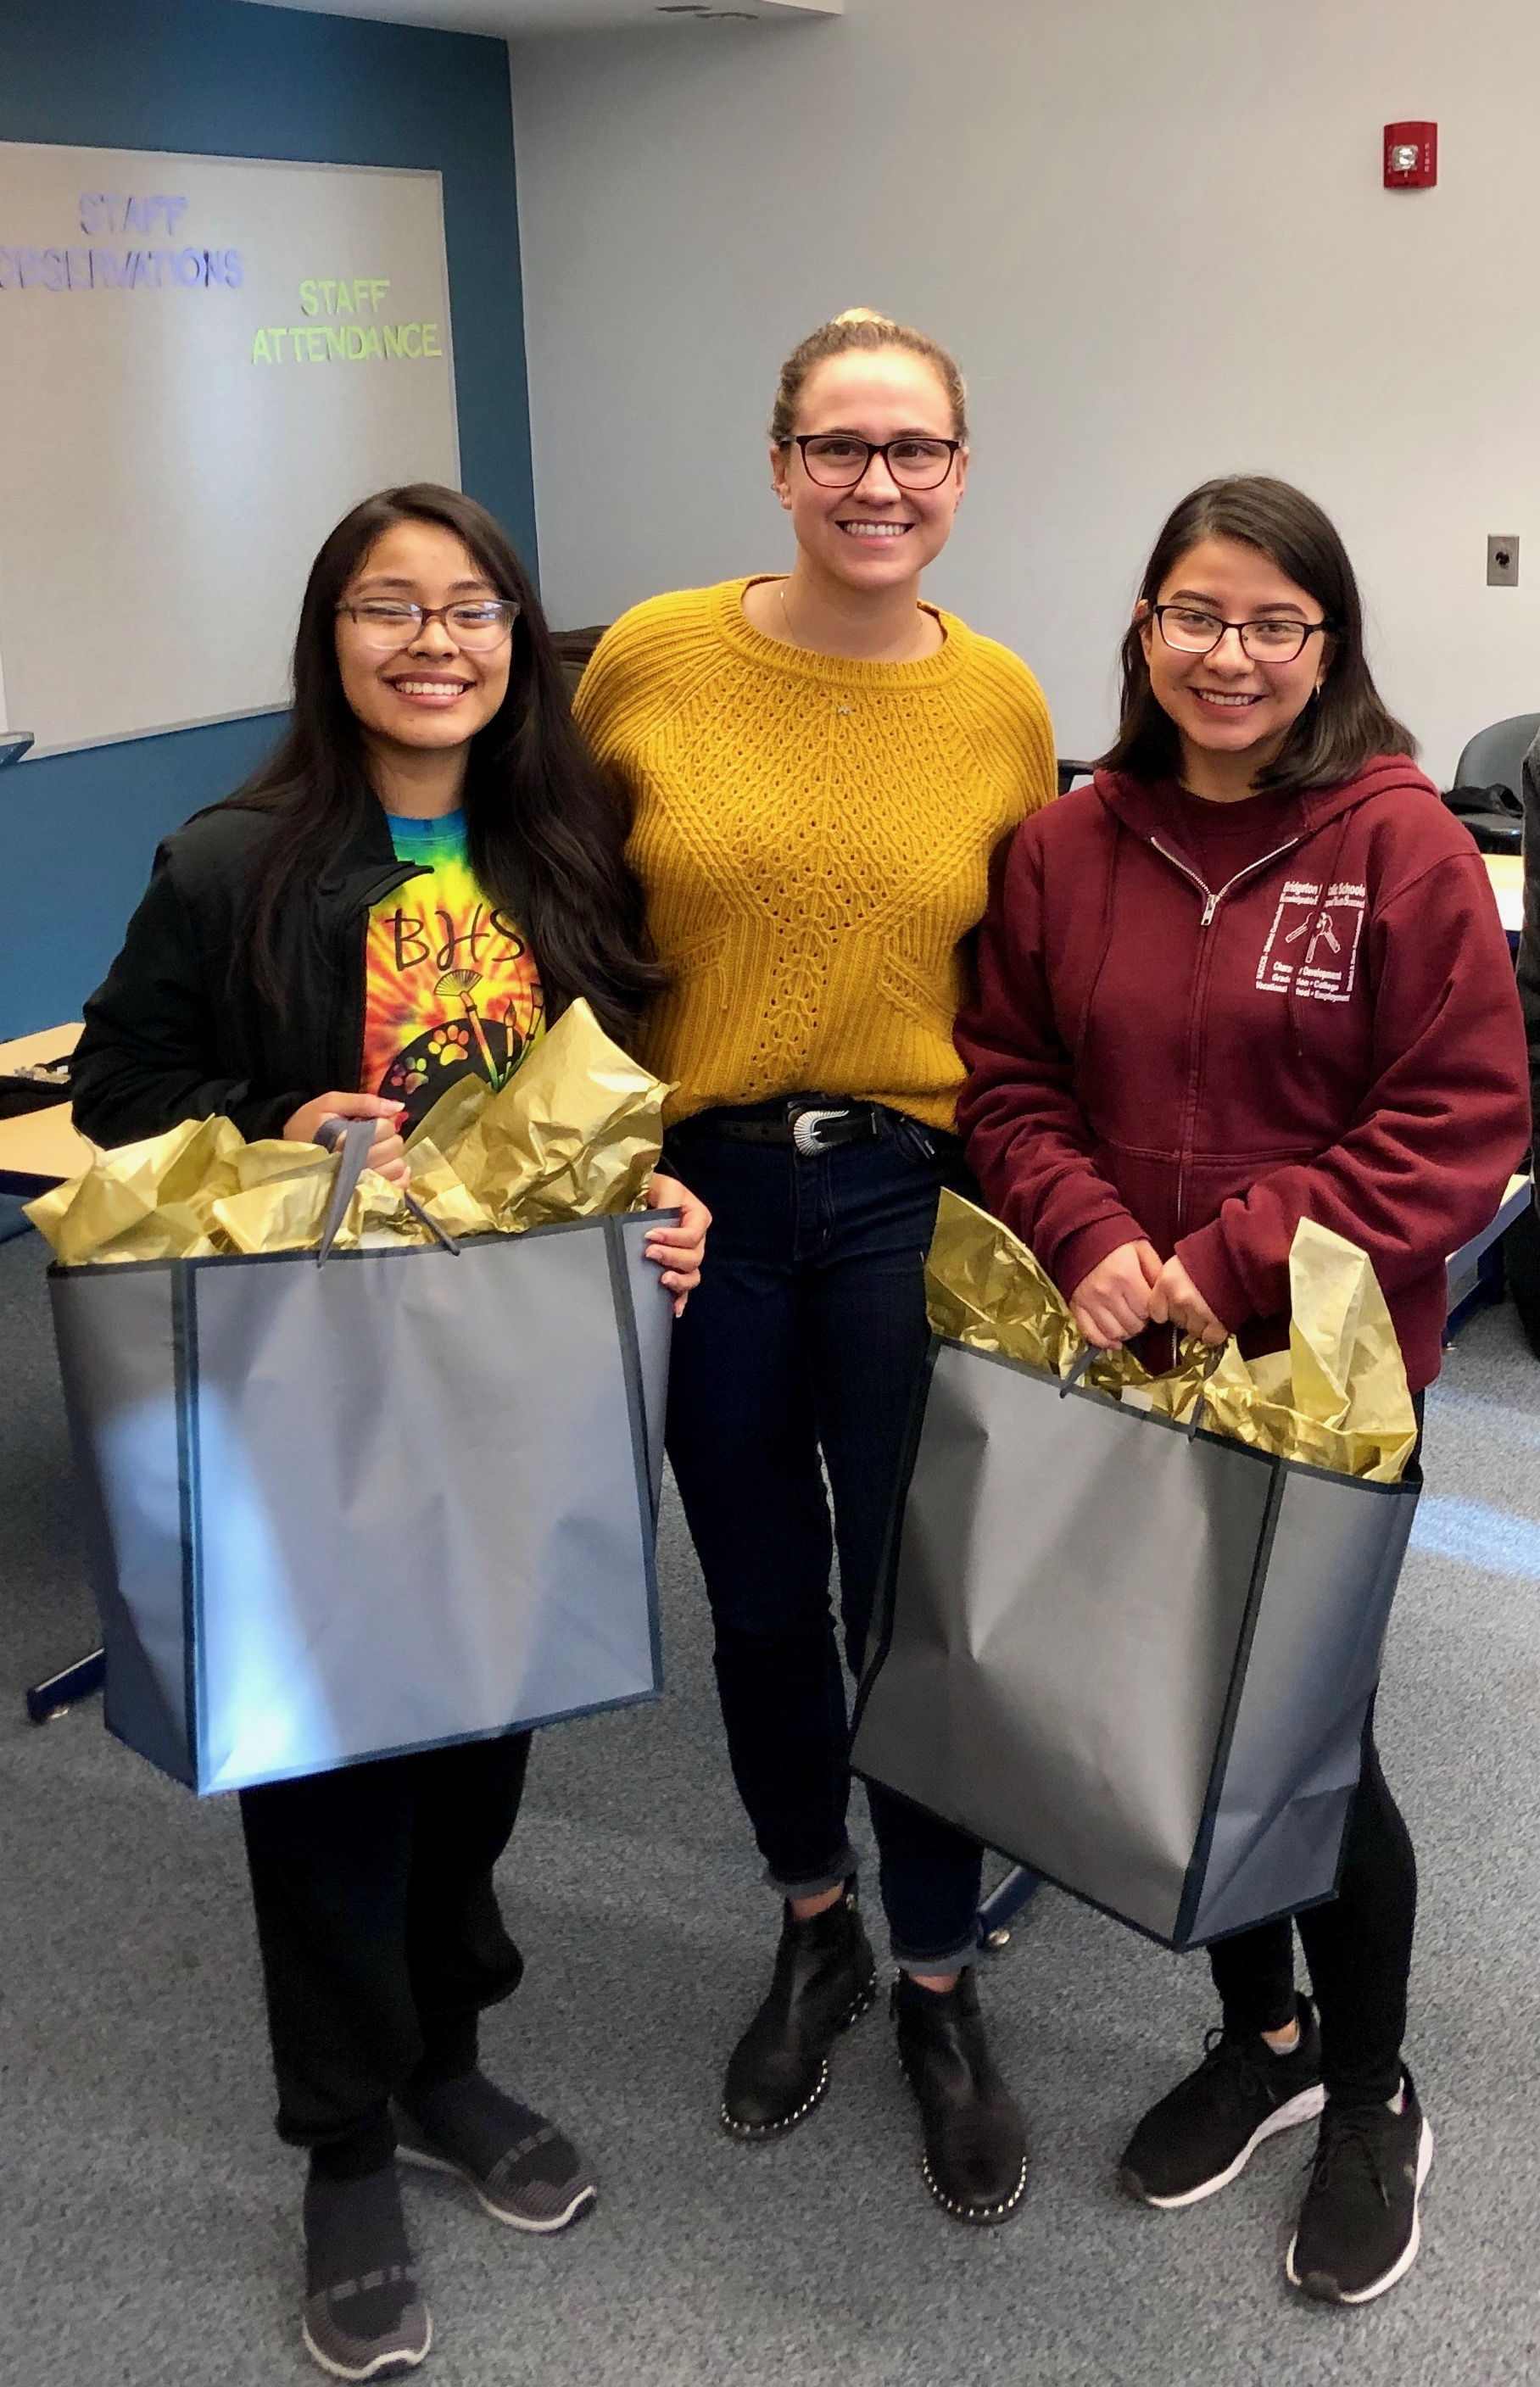 Bridgeton High School 2019 - Estrella Naciente donated two full tuition college scholarships to Virgen and Stephanie. The applicants wrote an essay on the importance of sustainable agriculture. This years scholarship was presented by Gabrielle Procacci, president of Estrella Naciente.